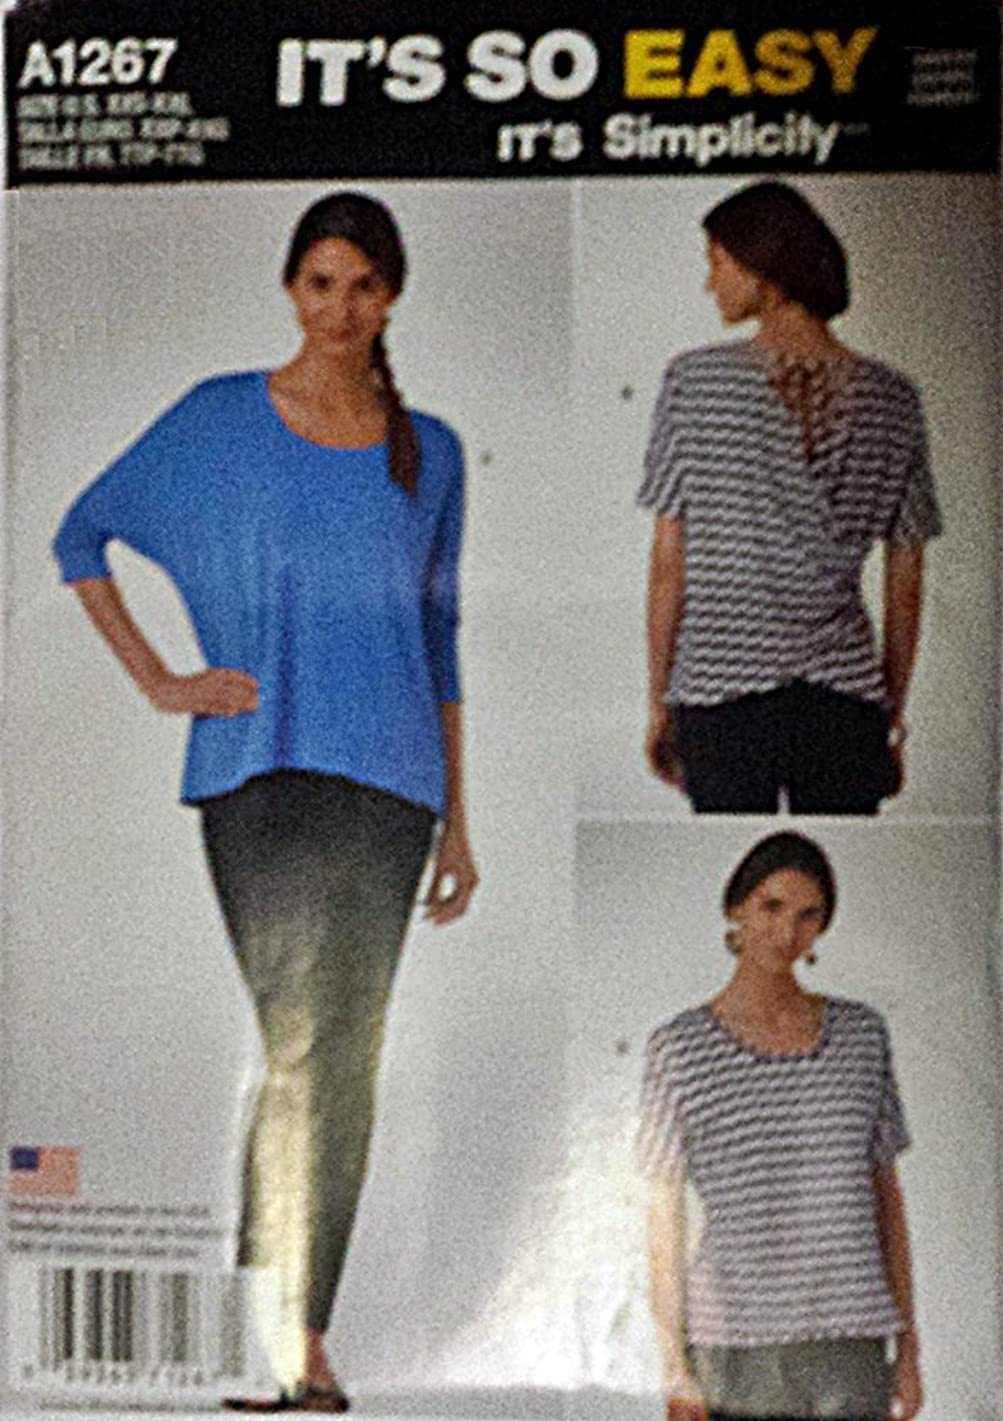 Simplicity It's So Easy 1267 Misses' Knit Top Sizes XXS - XXL (4-26)